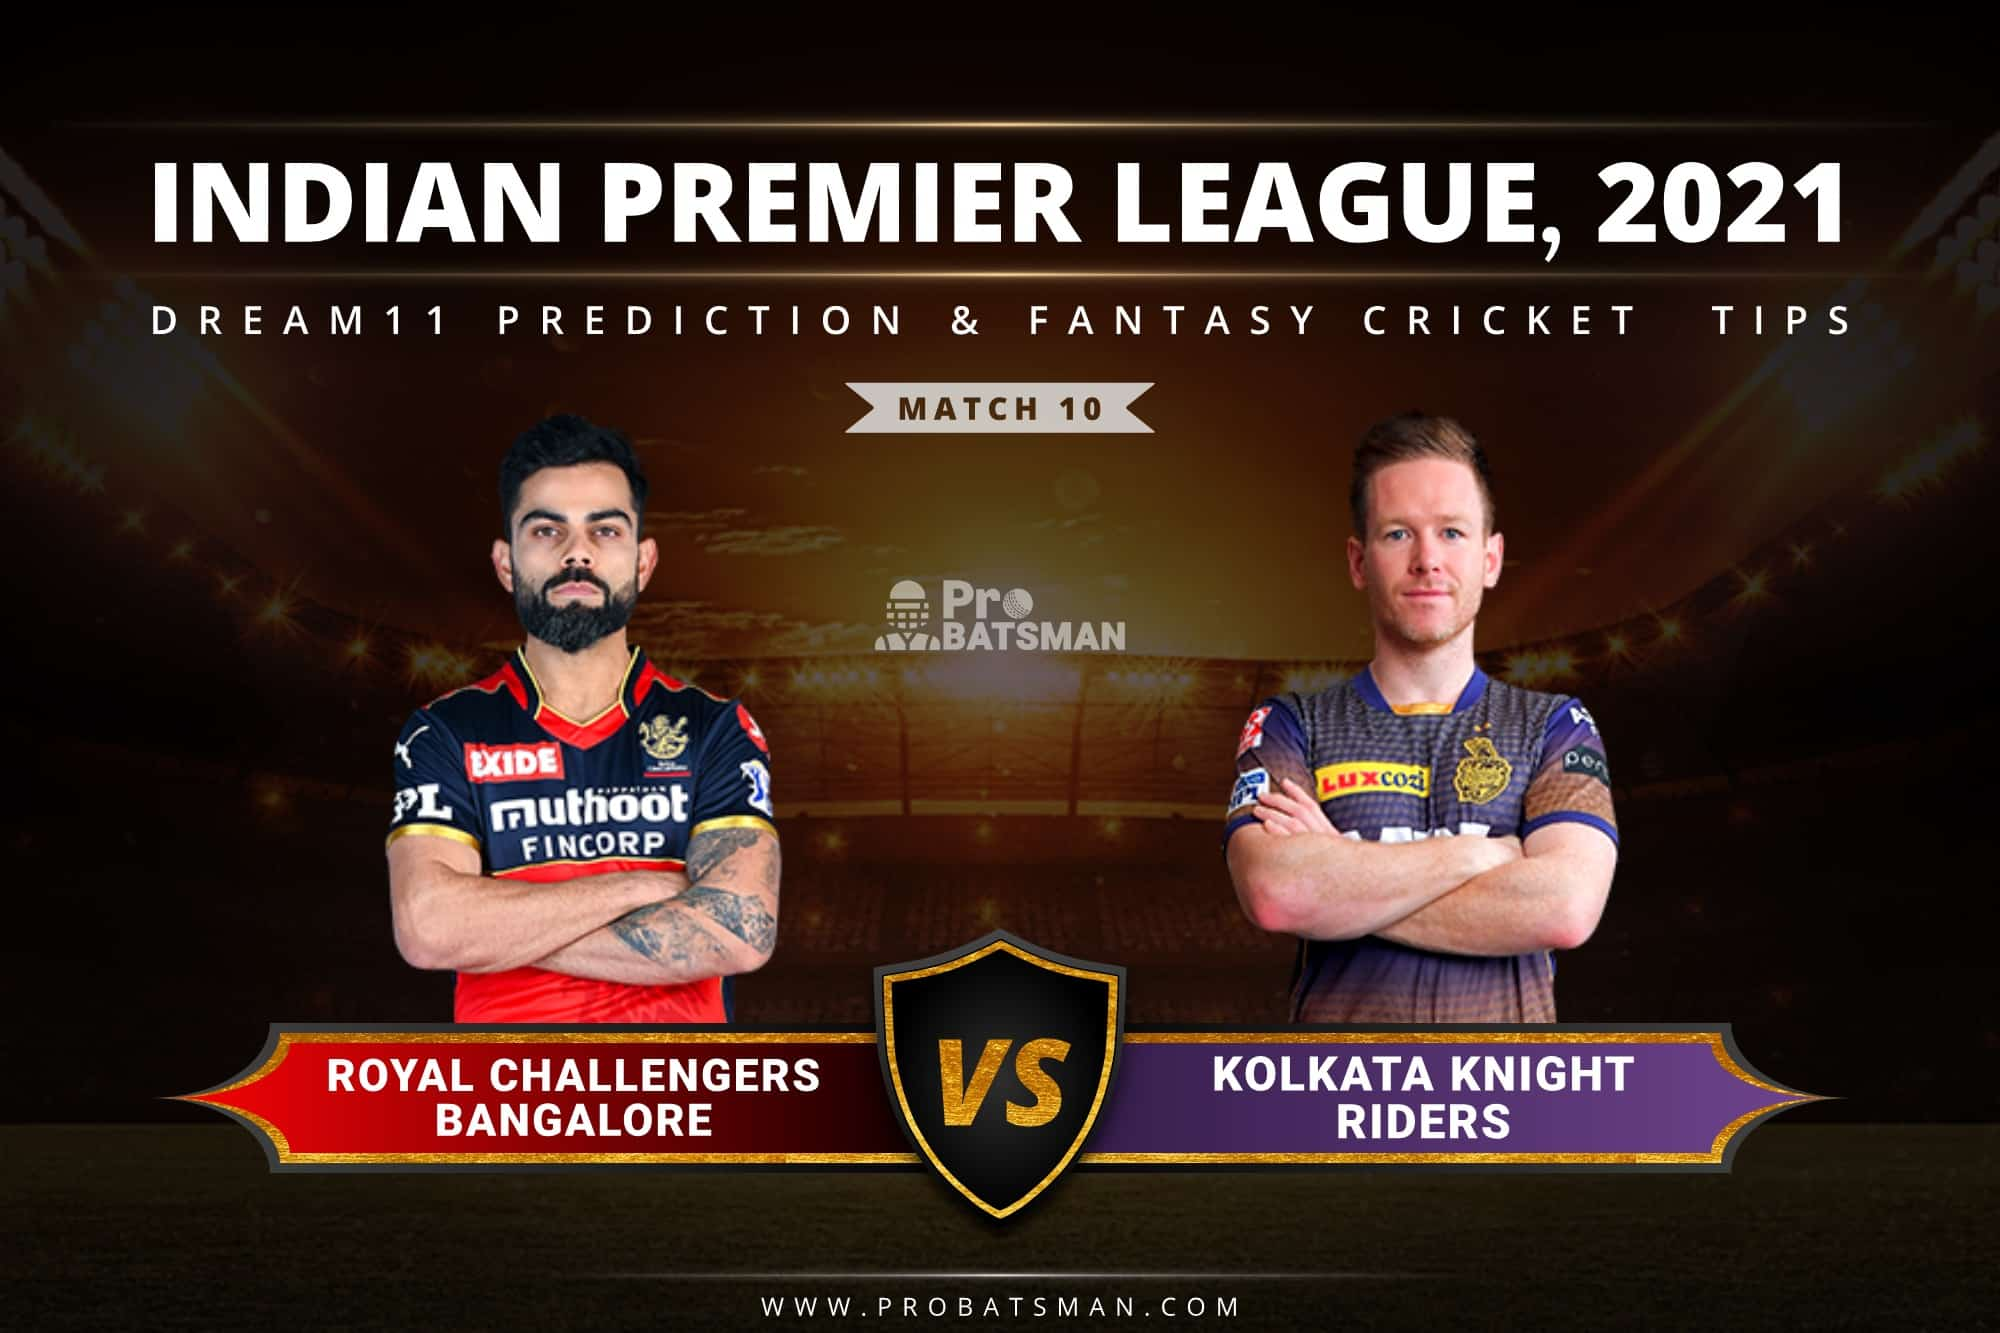 RCB vs KKR Dream11 Prediction: Fantasy Cricket Tips, Playing XI, Pitch Report, Stats & Injury Updates of Match 10, IPL 2021